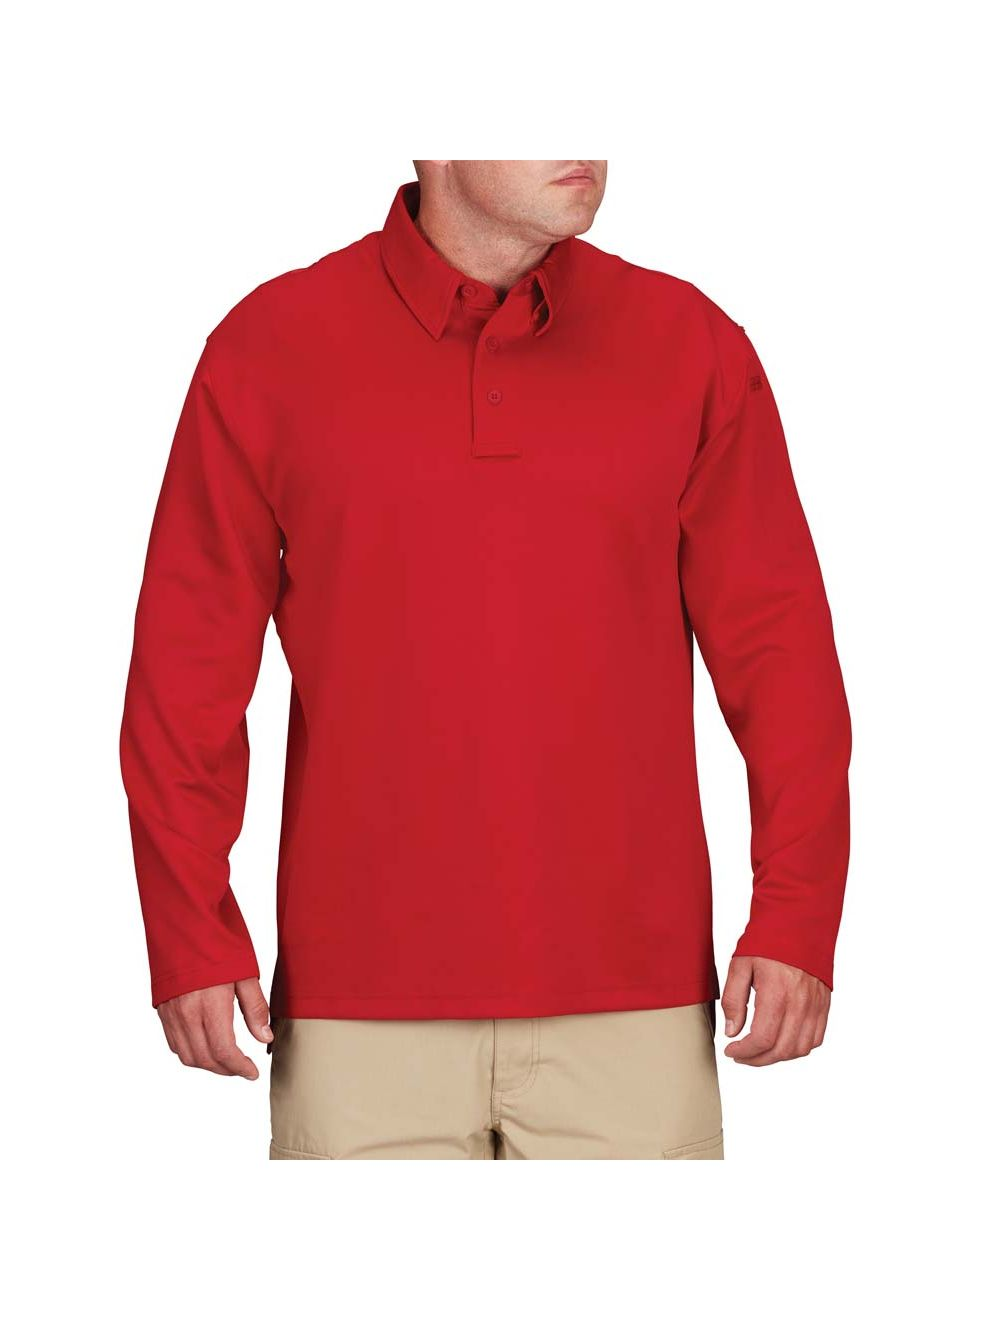 Propper Men's I.C.E.® Performance Polo - Long Sleeve